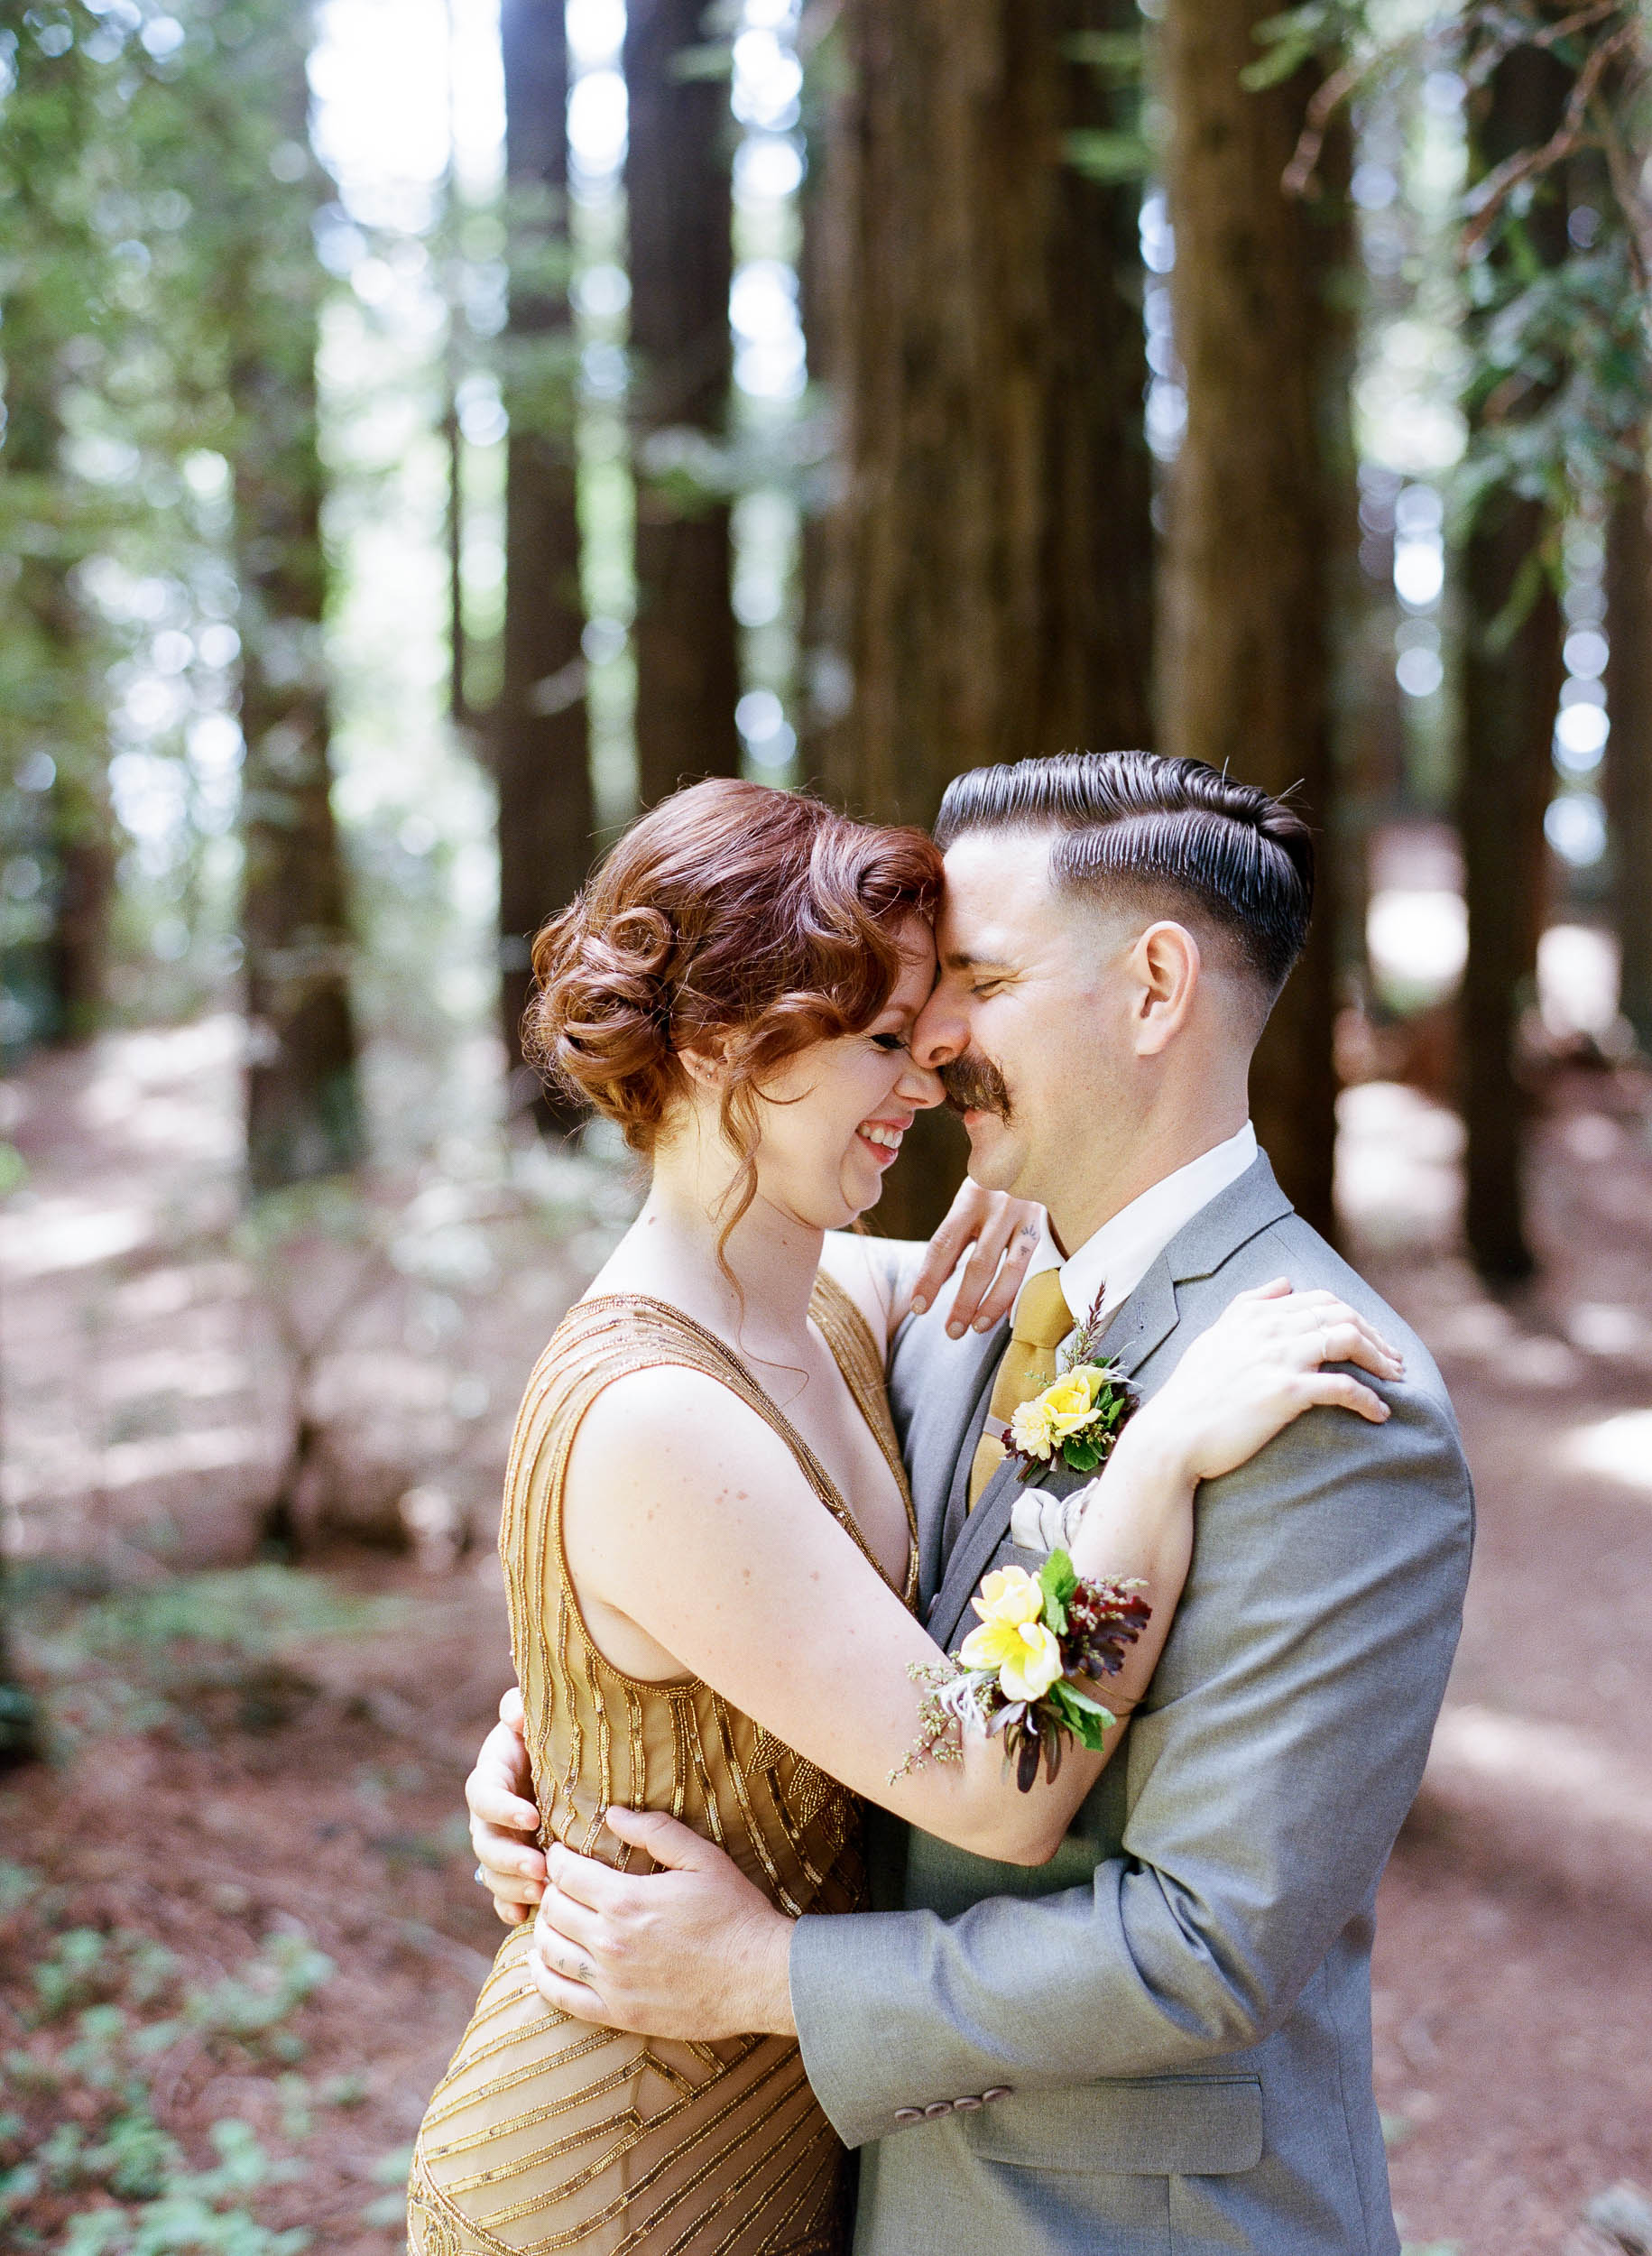 050418_J+S_Oakland Redwoods Elopement_Buena Lane Photography_P4_005.jpg